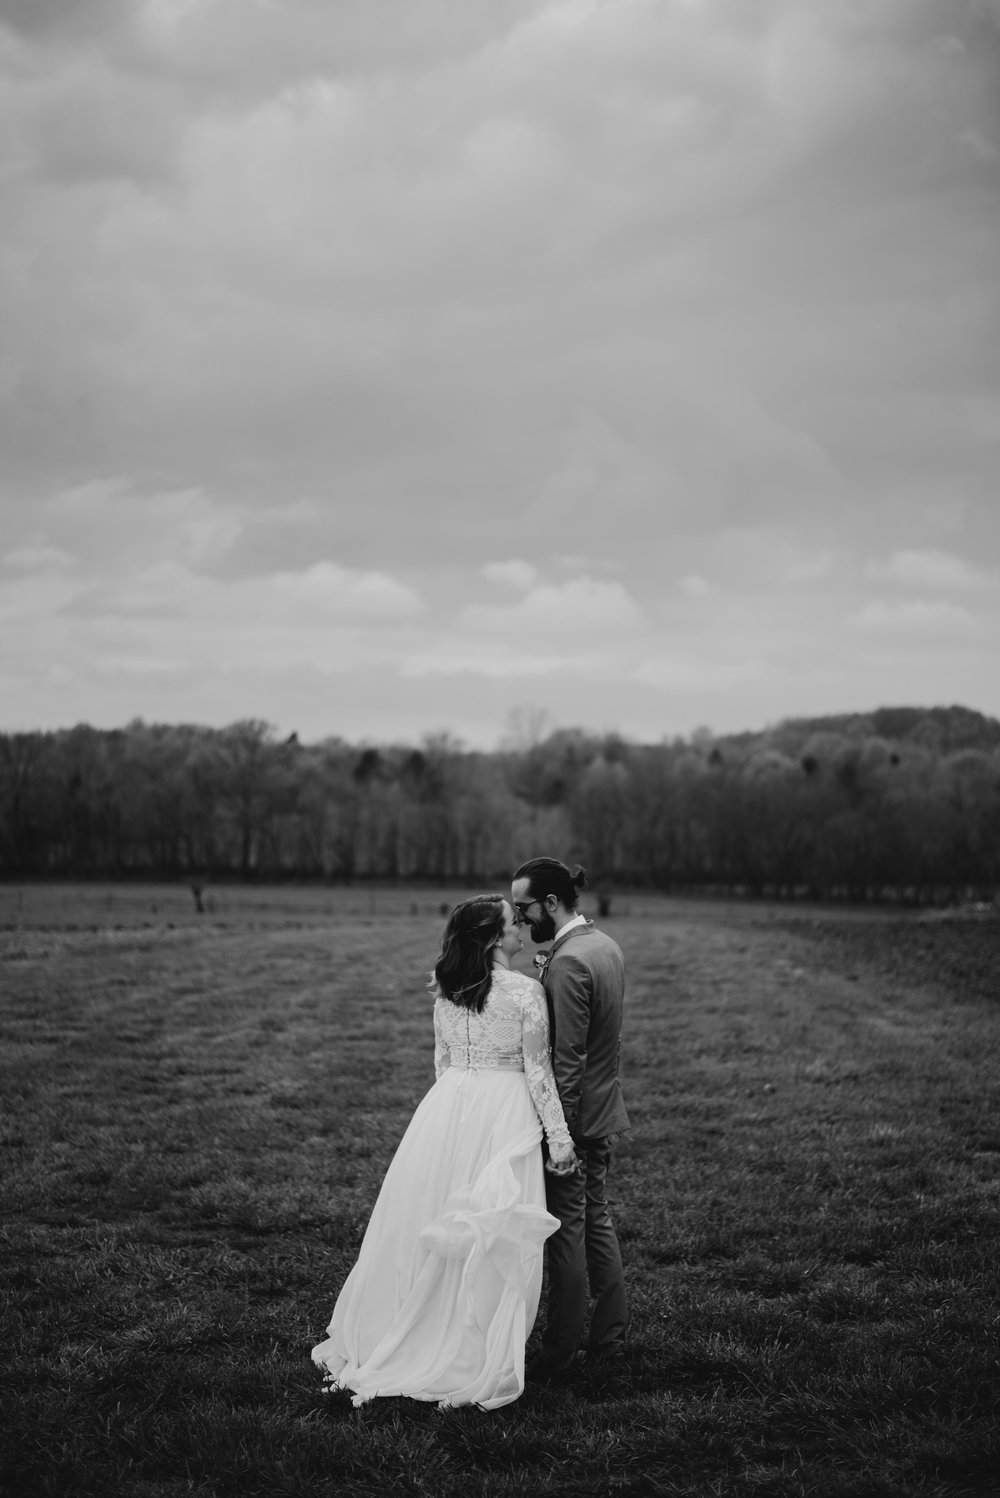 Allenbrooke-Farms-Nashville-Wedding-Photographers 23.jpg